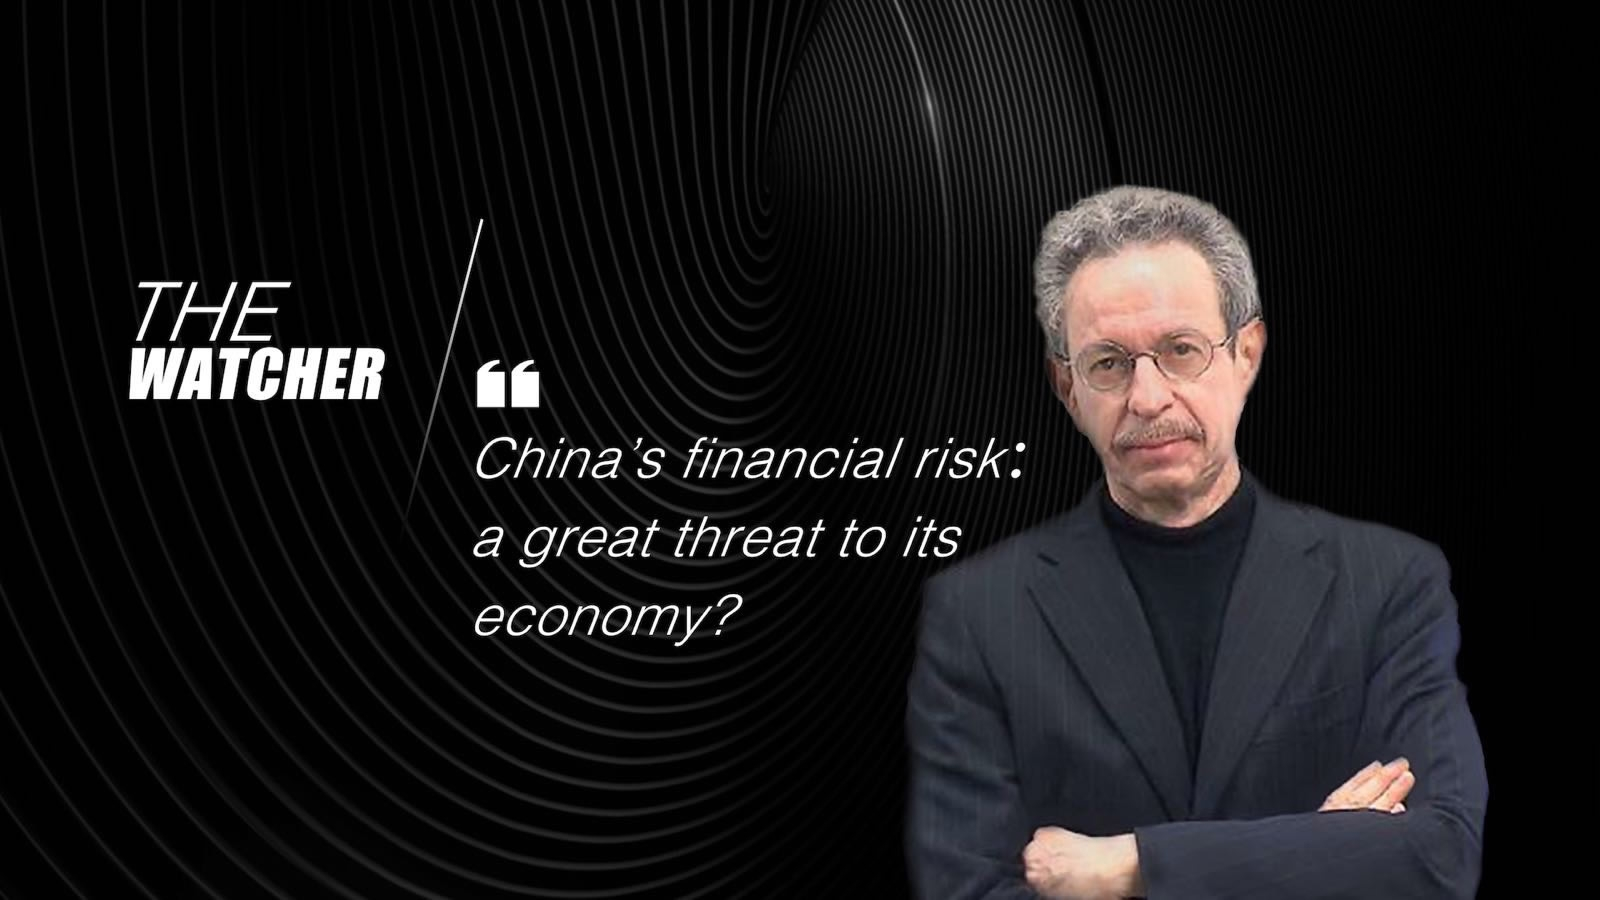 The Watcher: China's financial risk: a great threat to its economy?